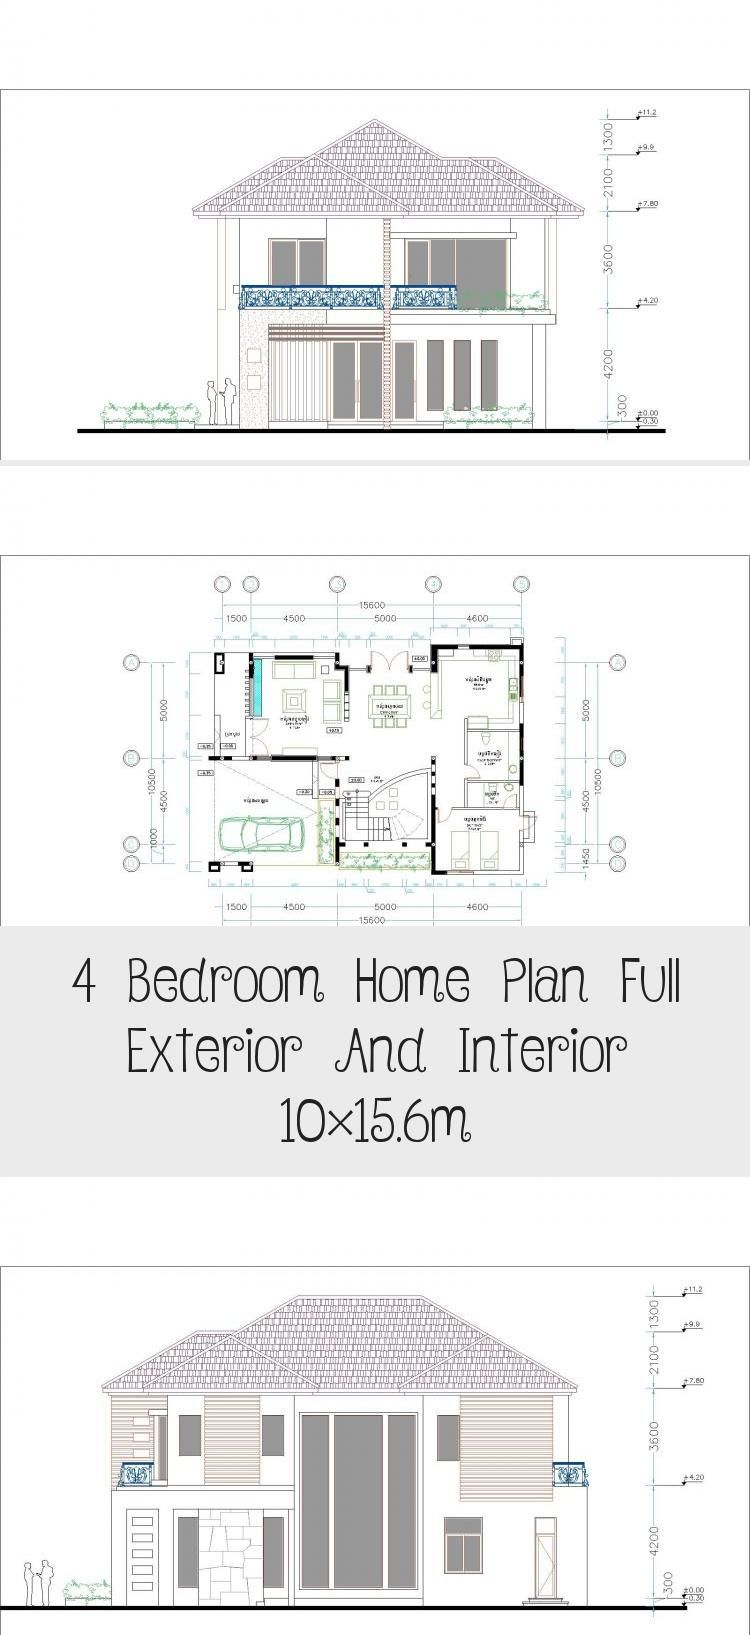 10x15 Room: 4 Bedroom Home Plan Full Exterior And Interior 10×15.6m In